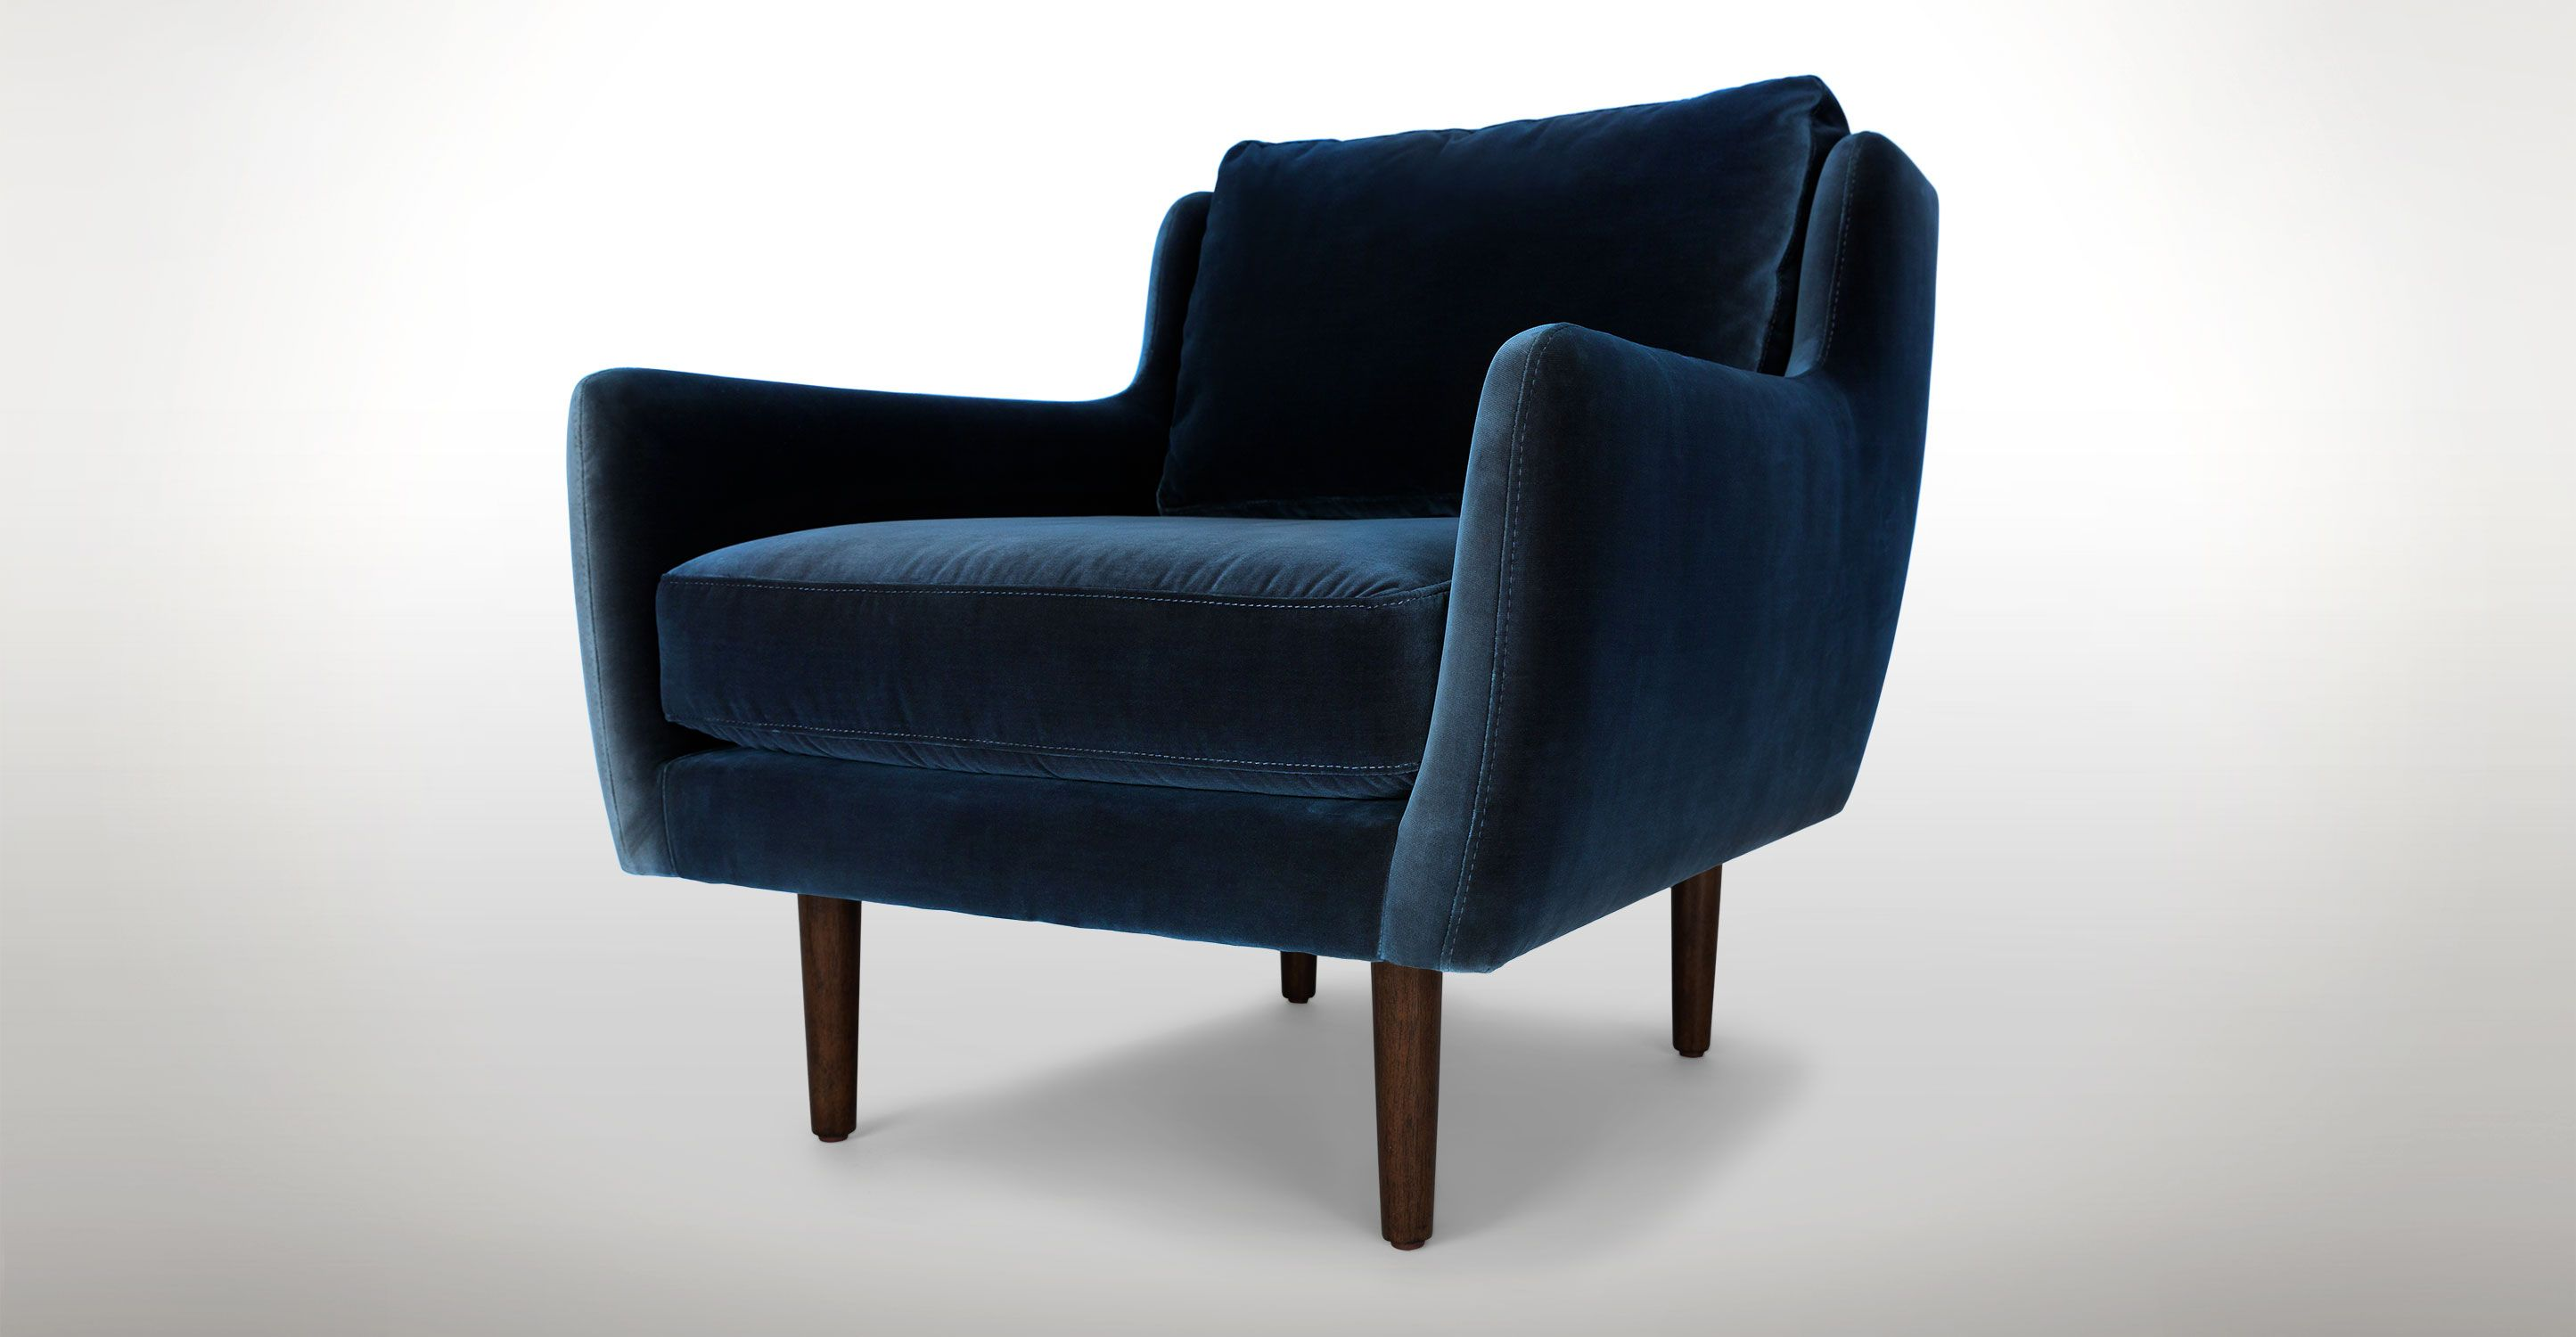 Beautiful Blue Velvet Chair   Walnut Wood Legs | Article Matrix Contemporary Furniture